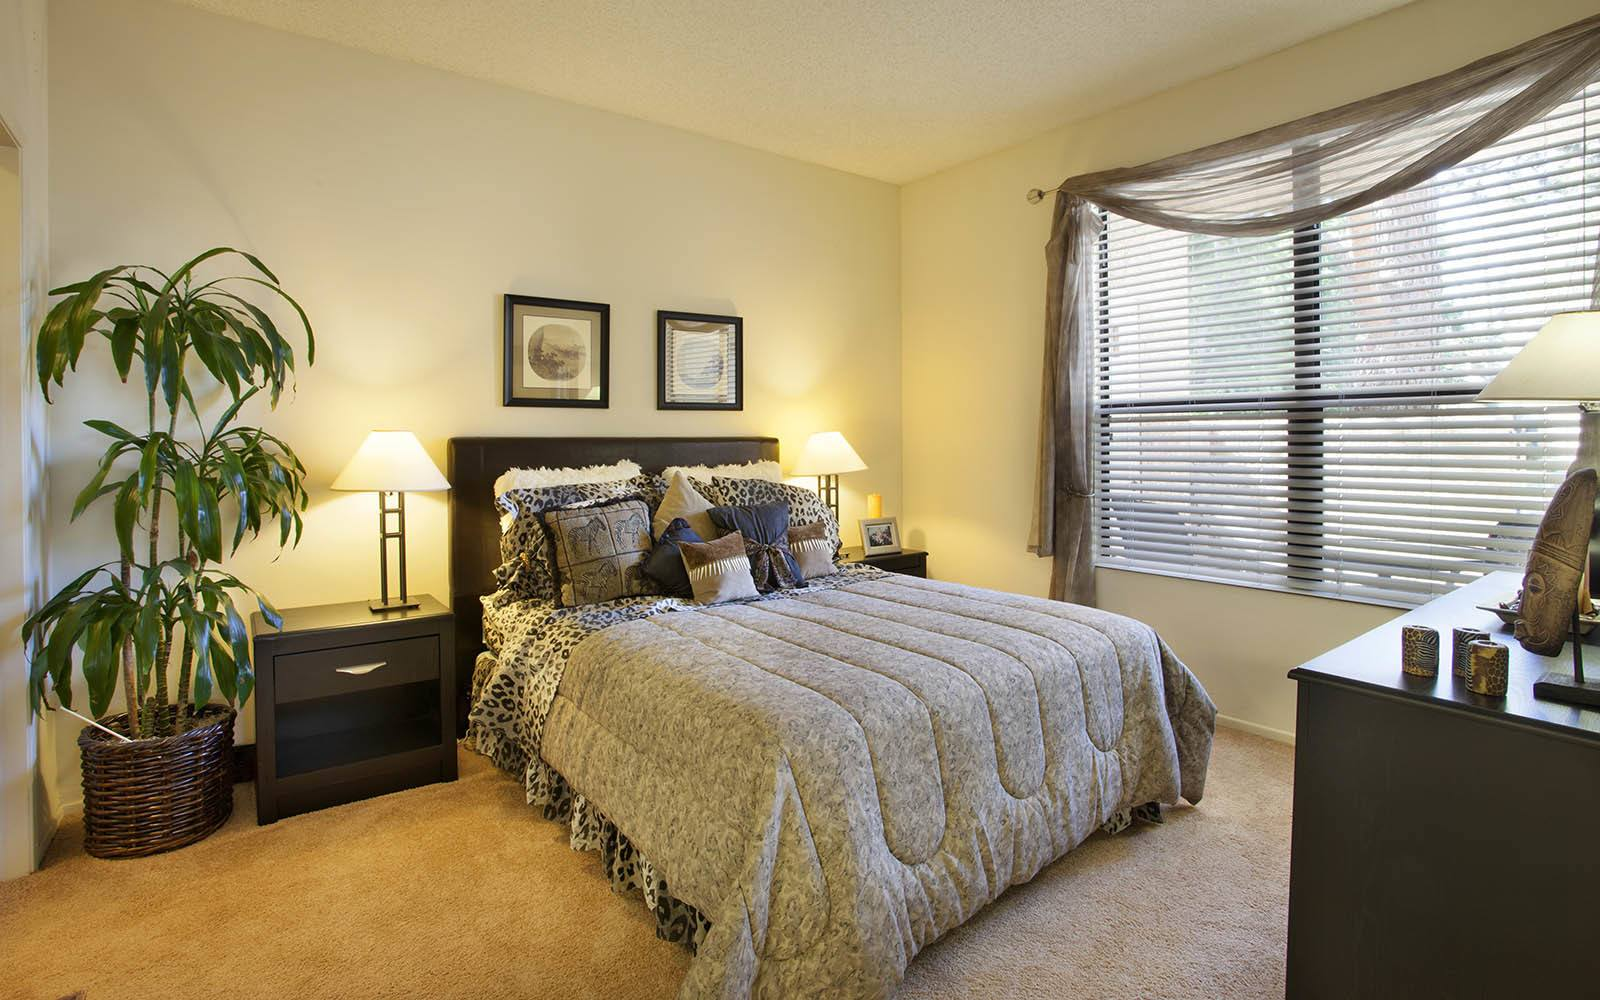 Spacious Bedroom With Large Windows at Cypress Point Apartments in Ventura, CA